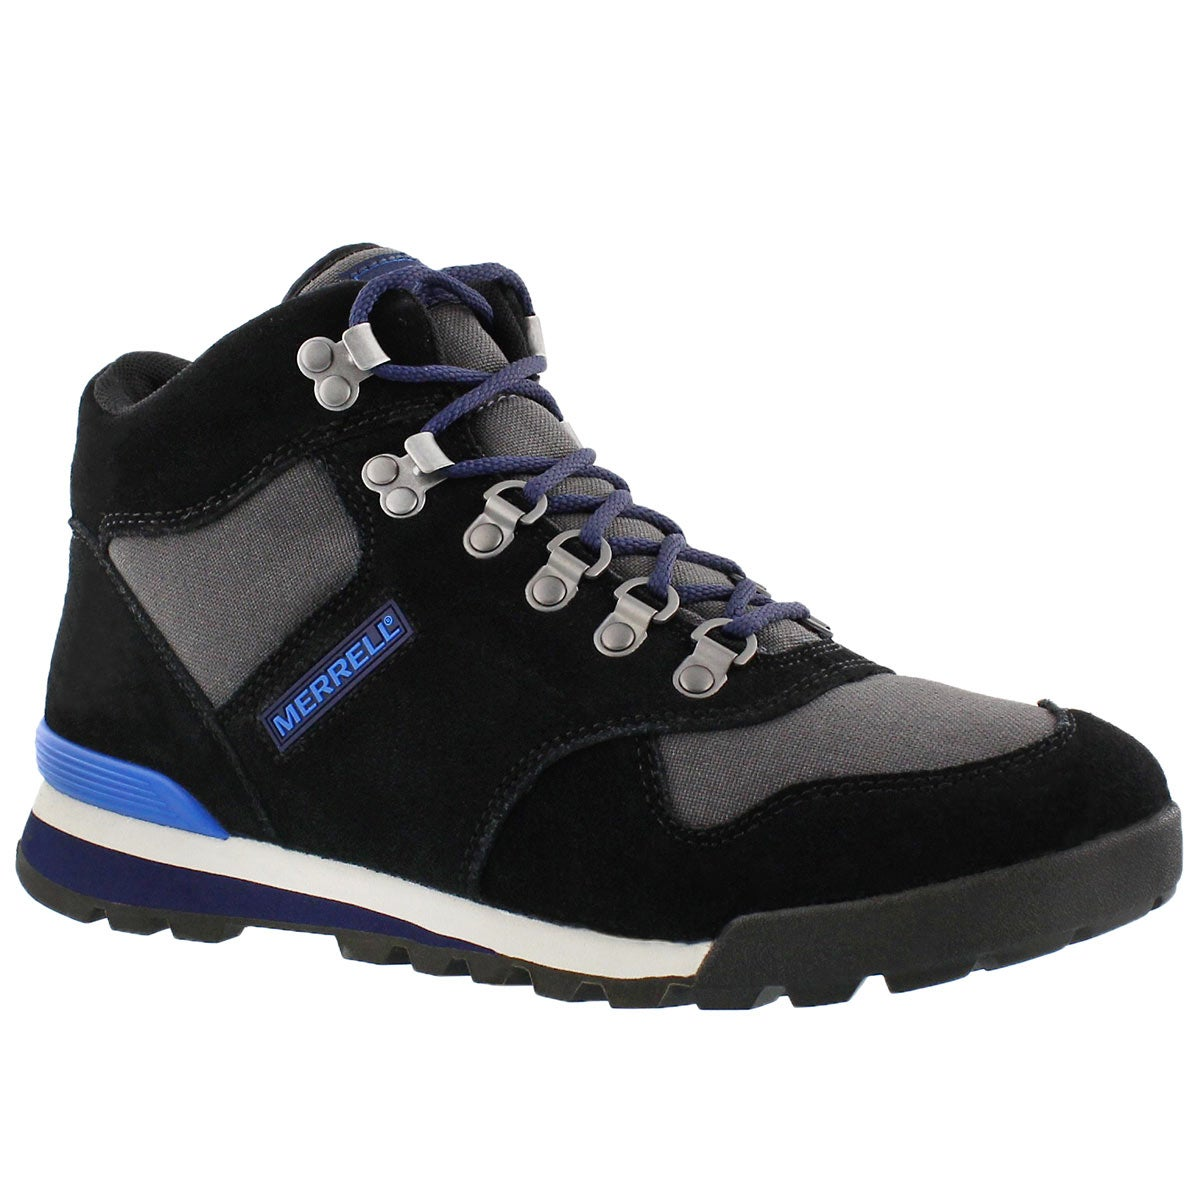 Mns Eagle black hiking ankle boot